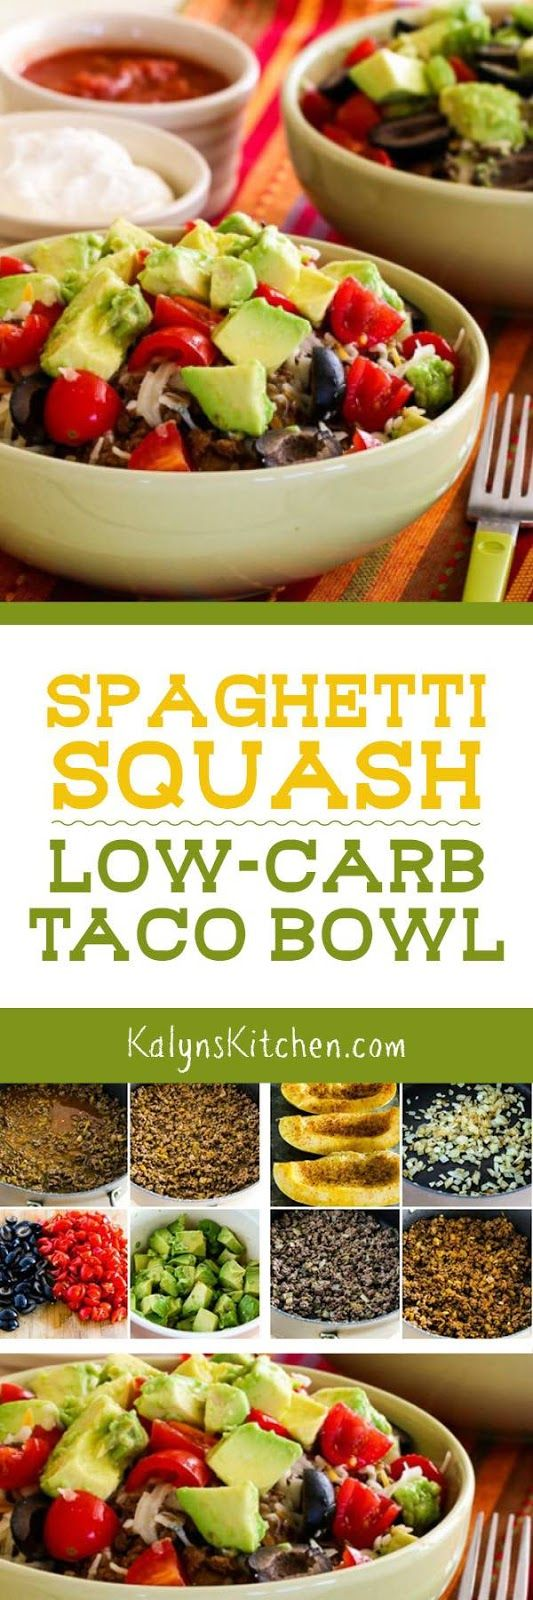 I love all the spicy flavors in this Spaghetti Squash Low-Carb Taco Bowl; this is an easy and delicious low-carb meal that's quick enough to make on a week night! [found on KalynsKitchen.com]: